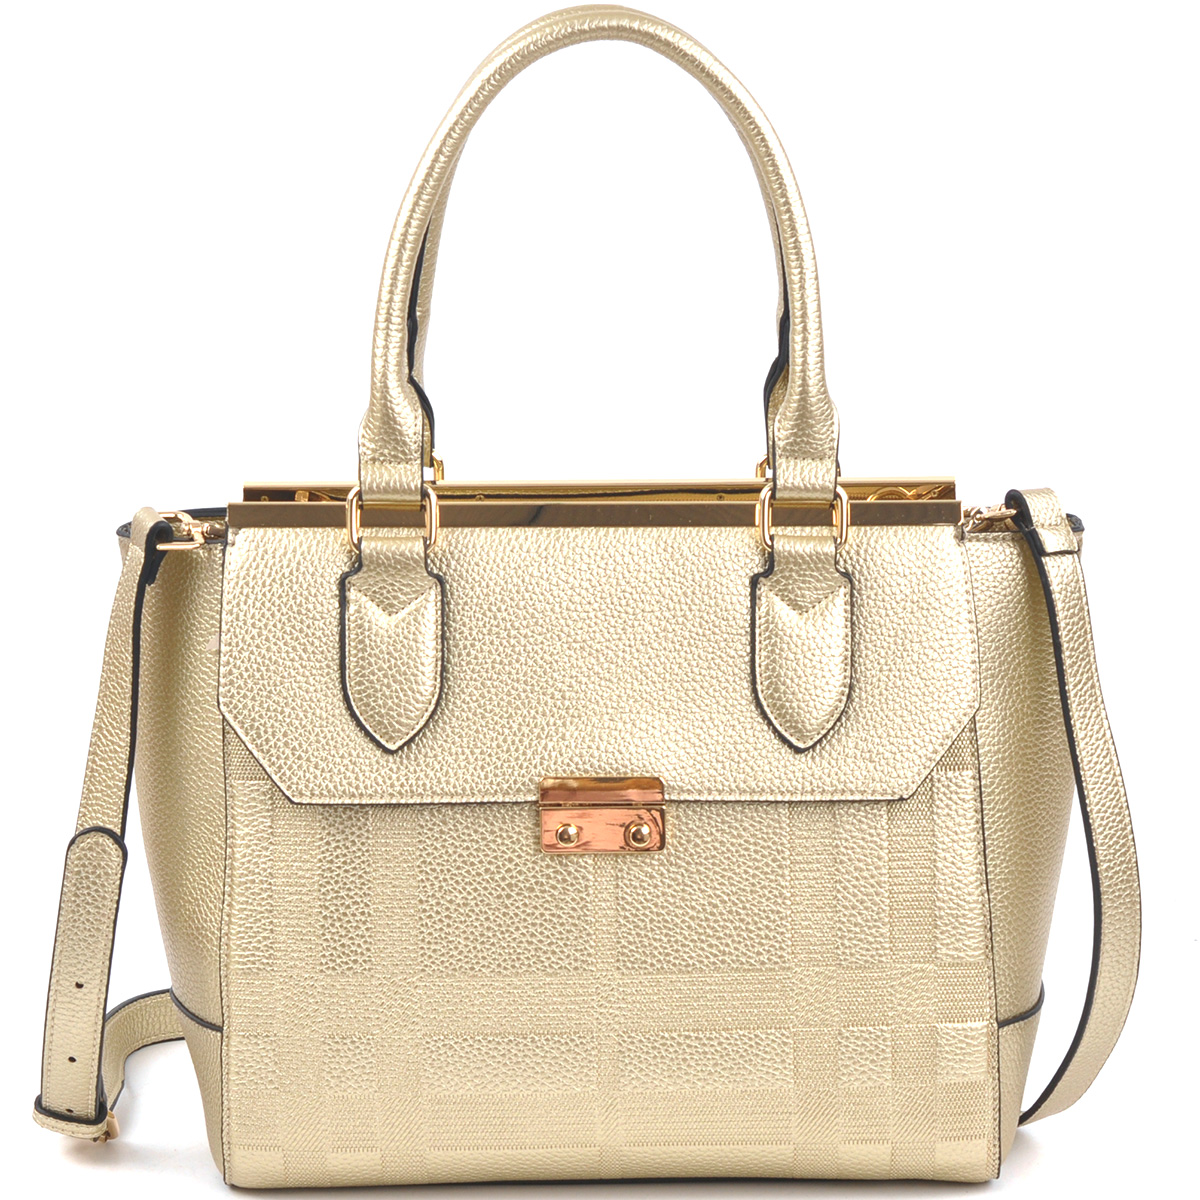 Fashion Satchel with Shoulder Strap